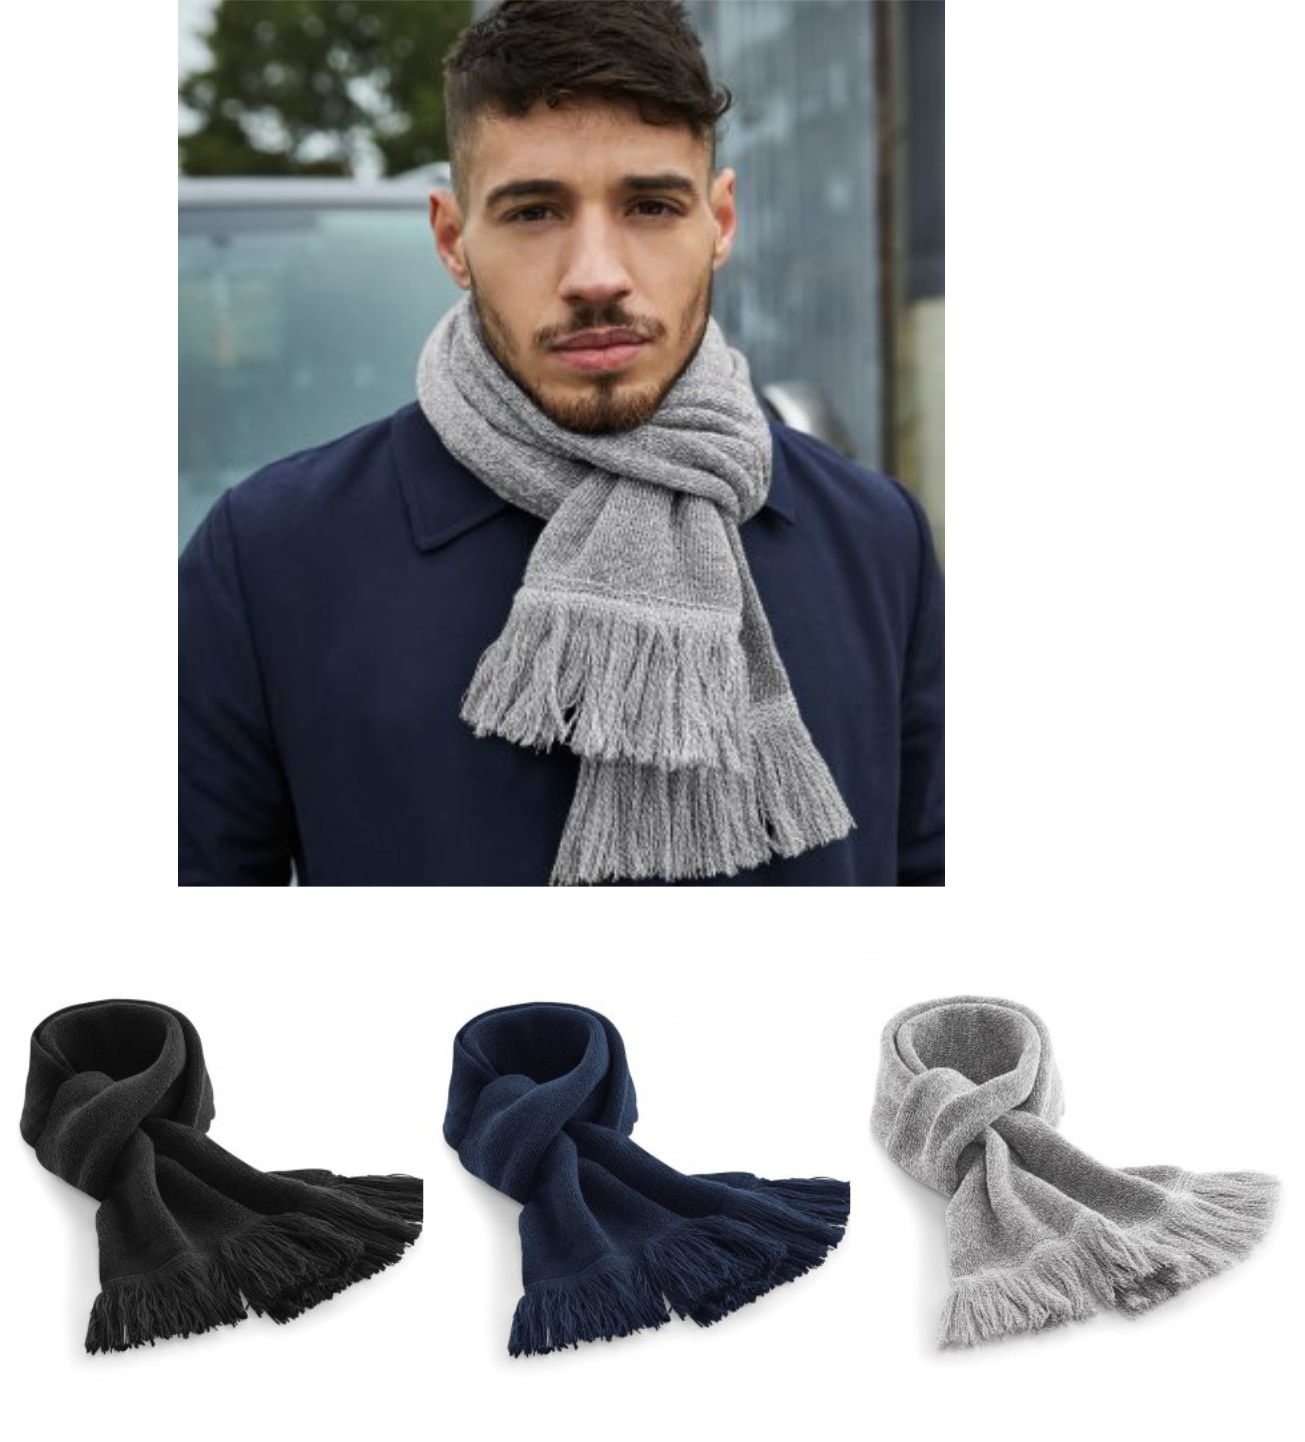 BB470 Beechfield Classic Knitted Scarf